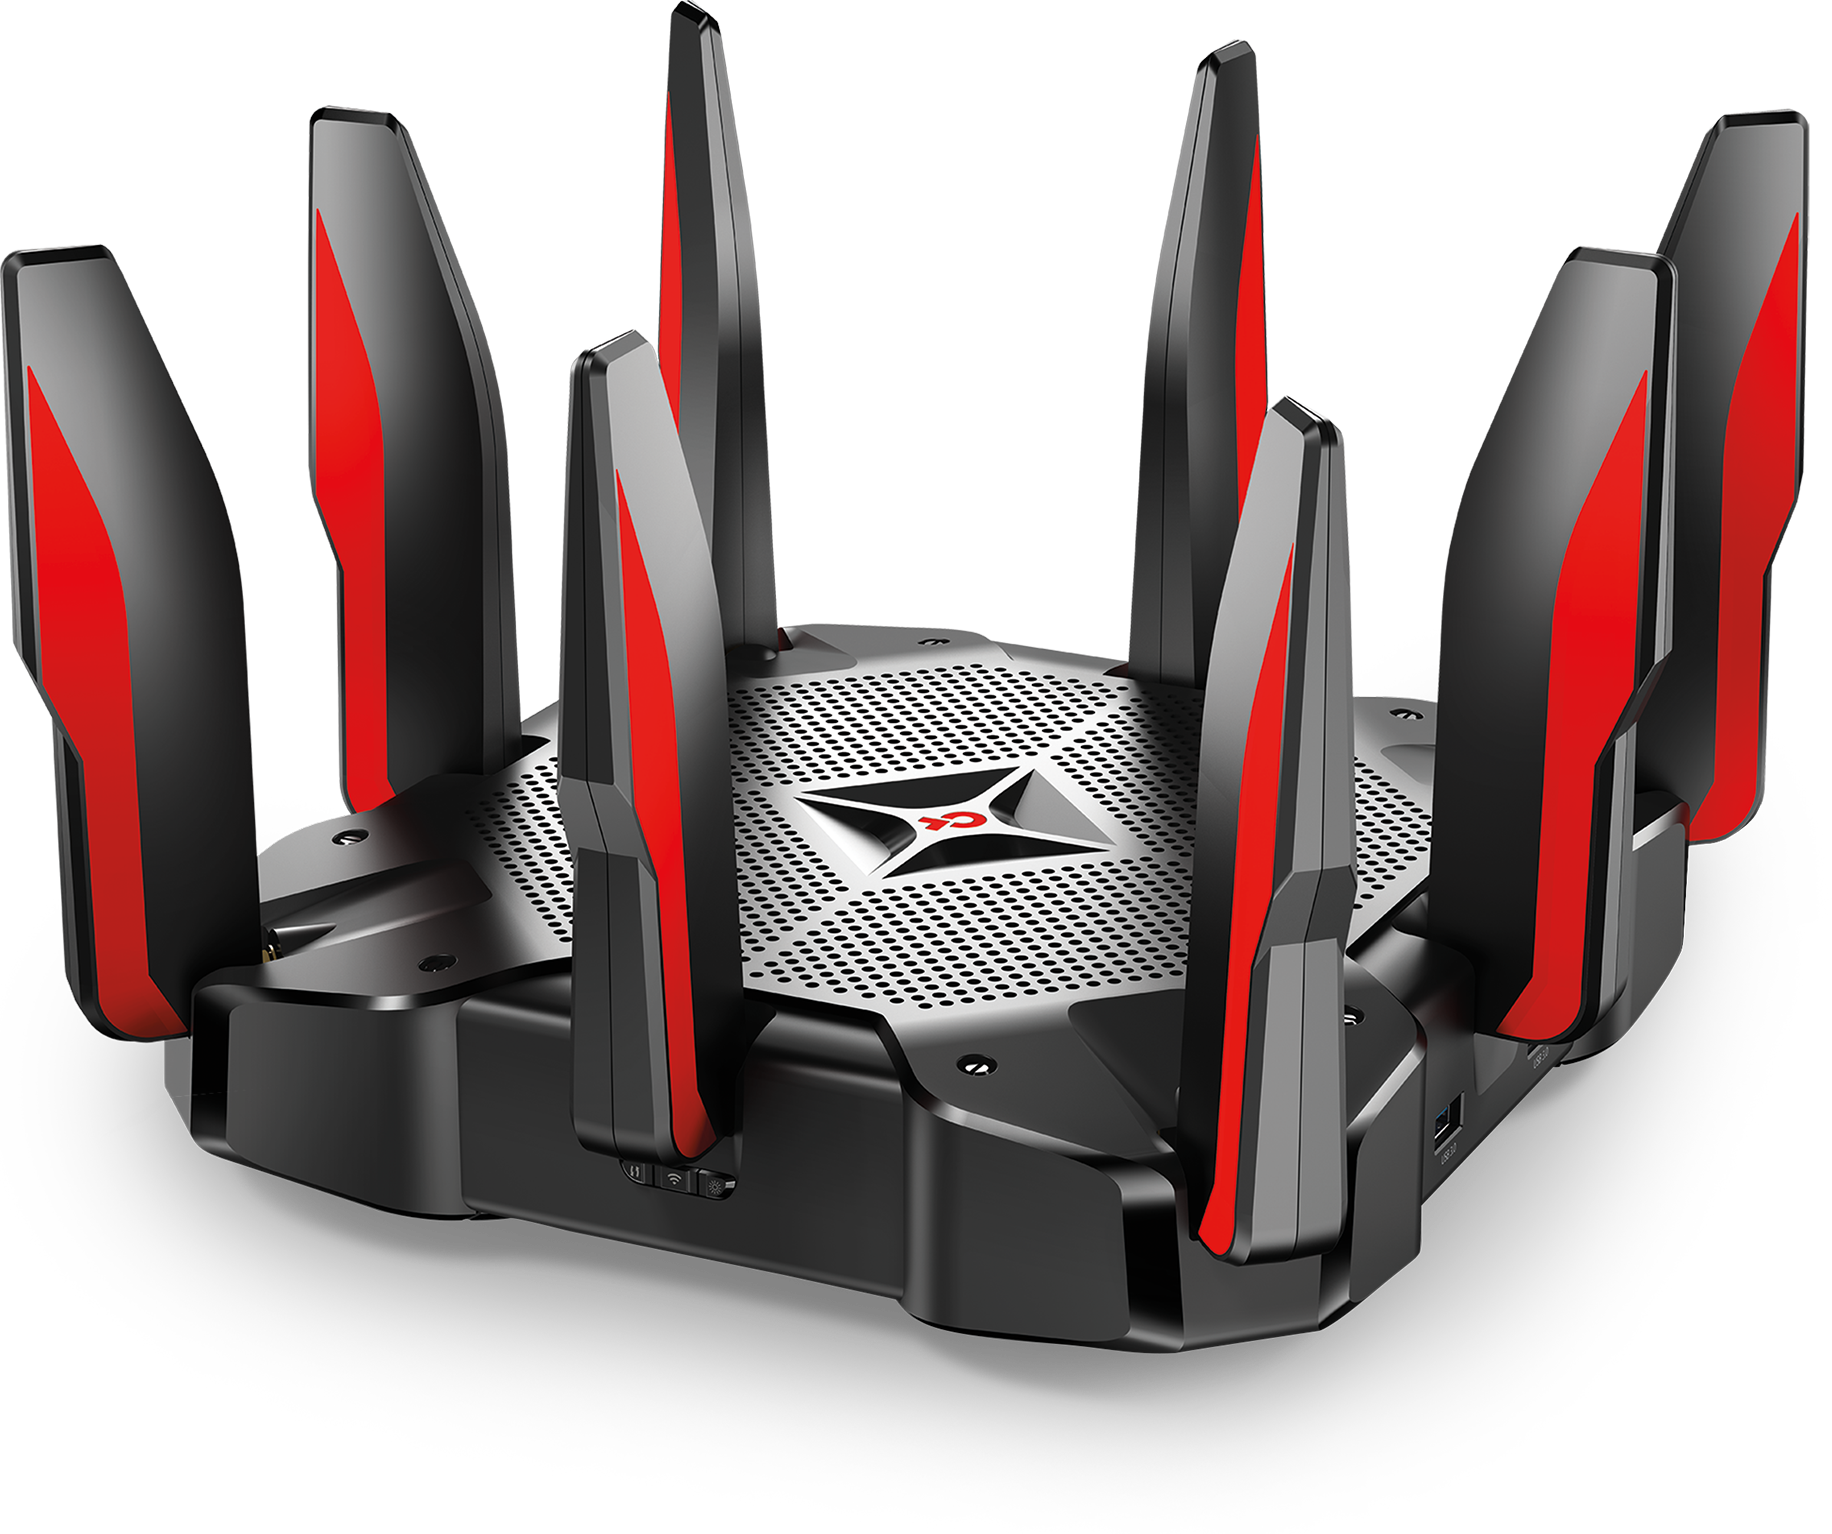 Buy TP-Link AC5400 Tri-Band Wireless Gigabit Gaming Router - Microsoft Store